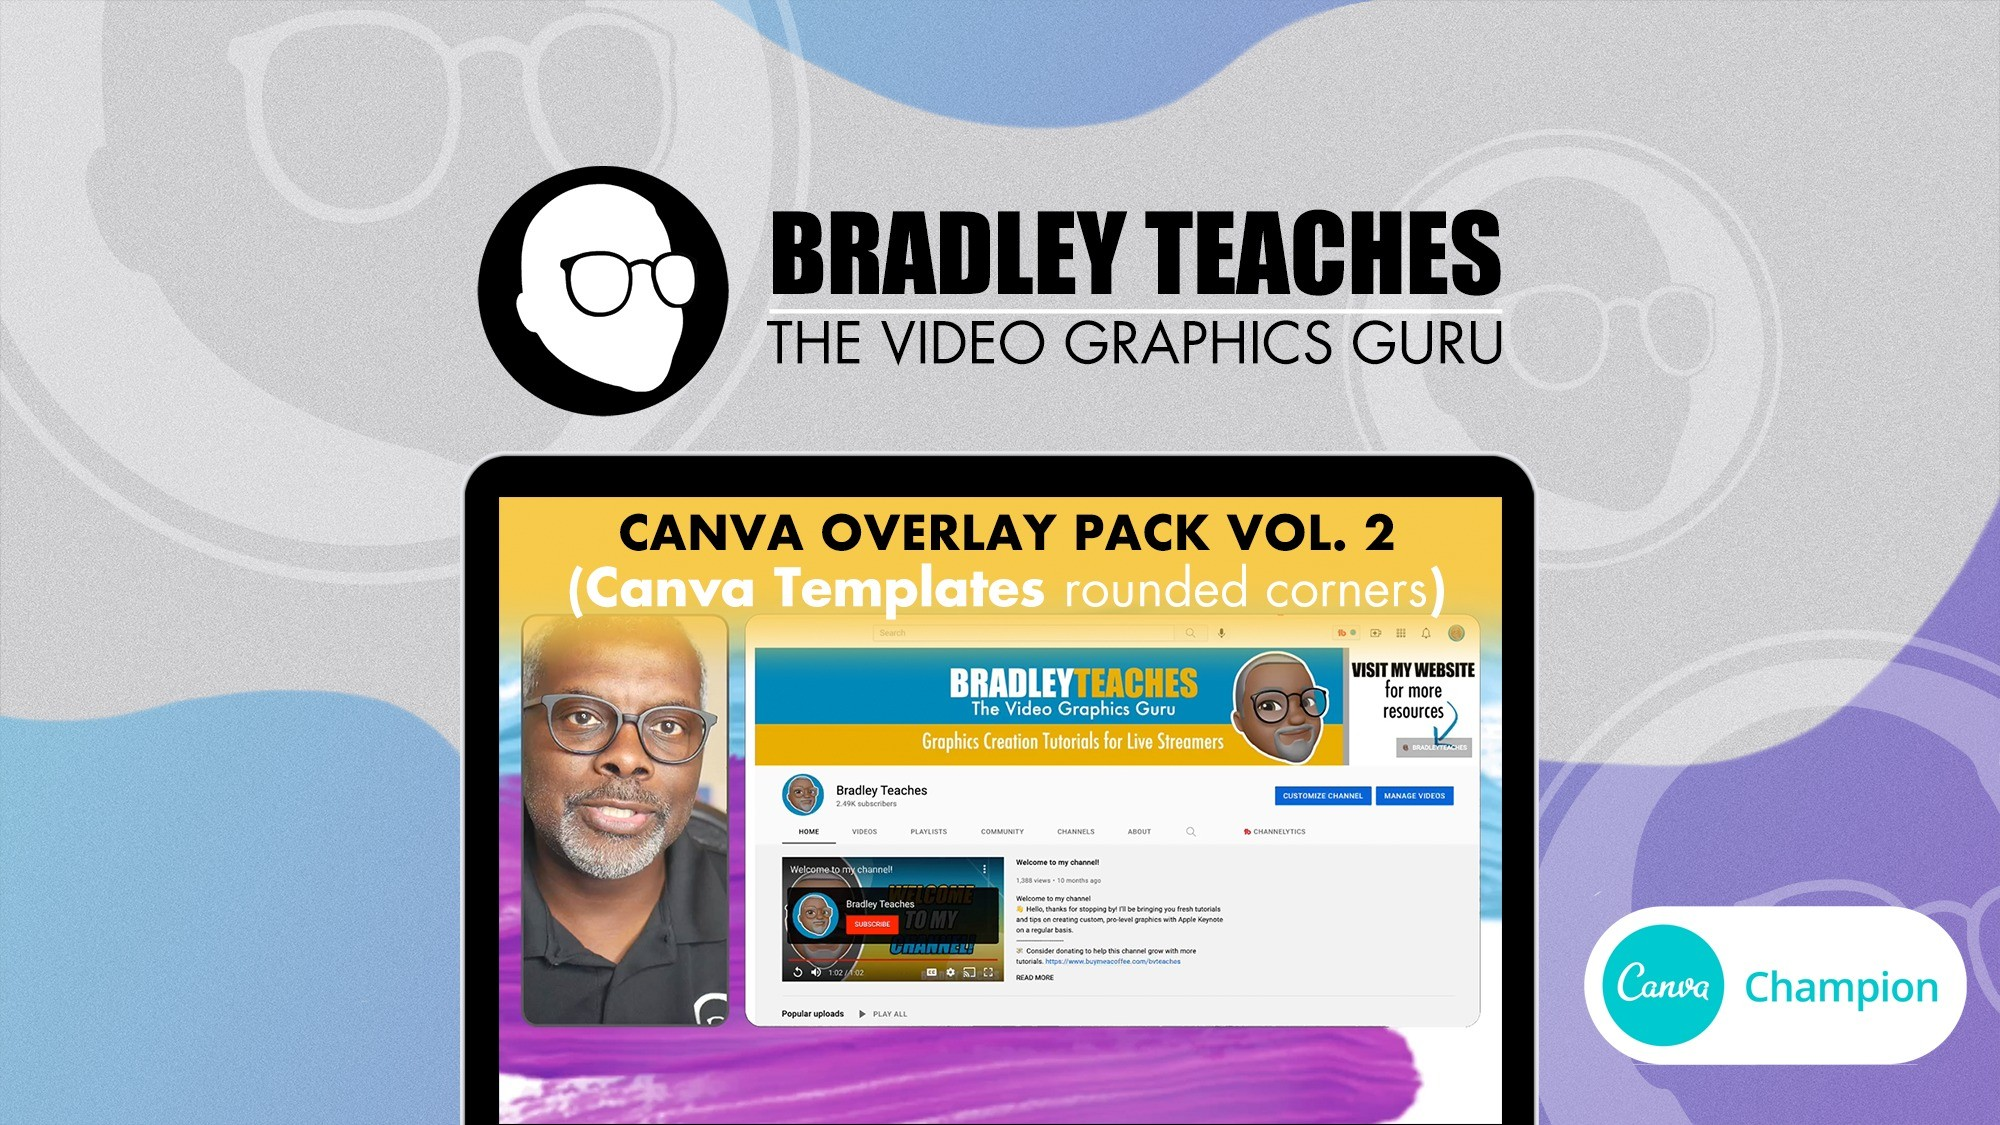 AppSumo Deal for Overlay Pack - Canva Templates Vol. 2